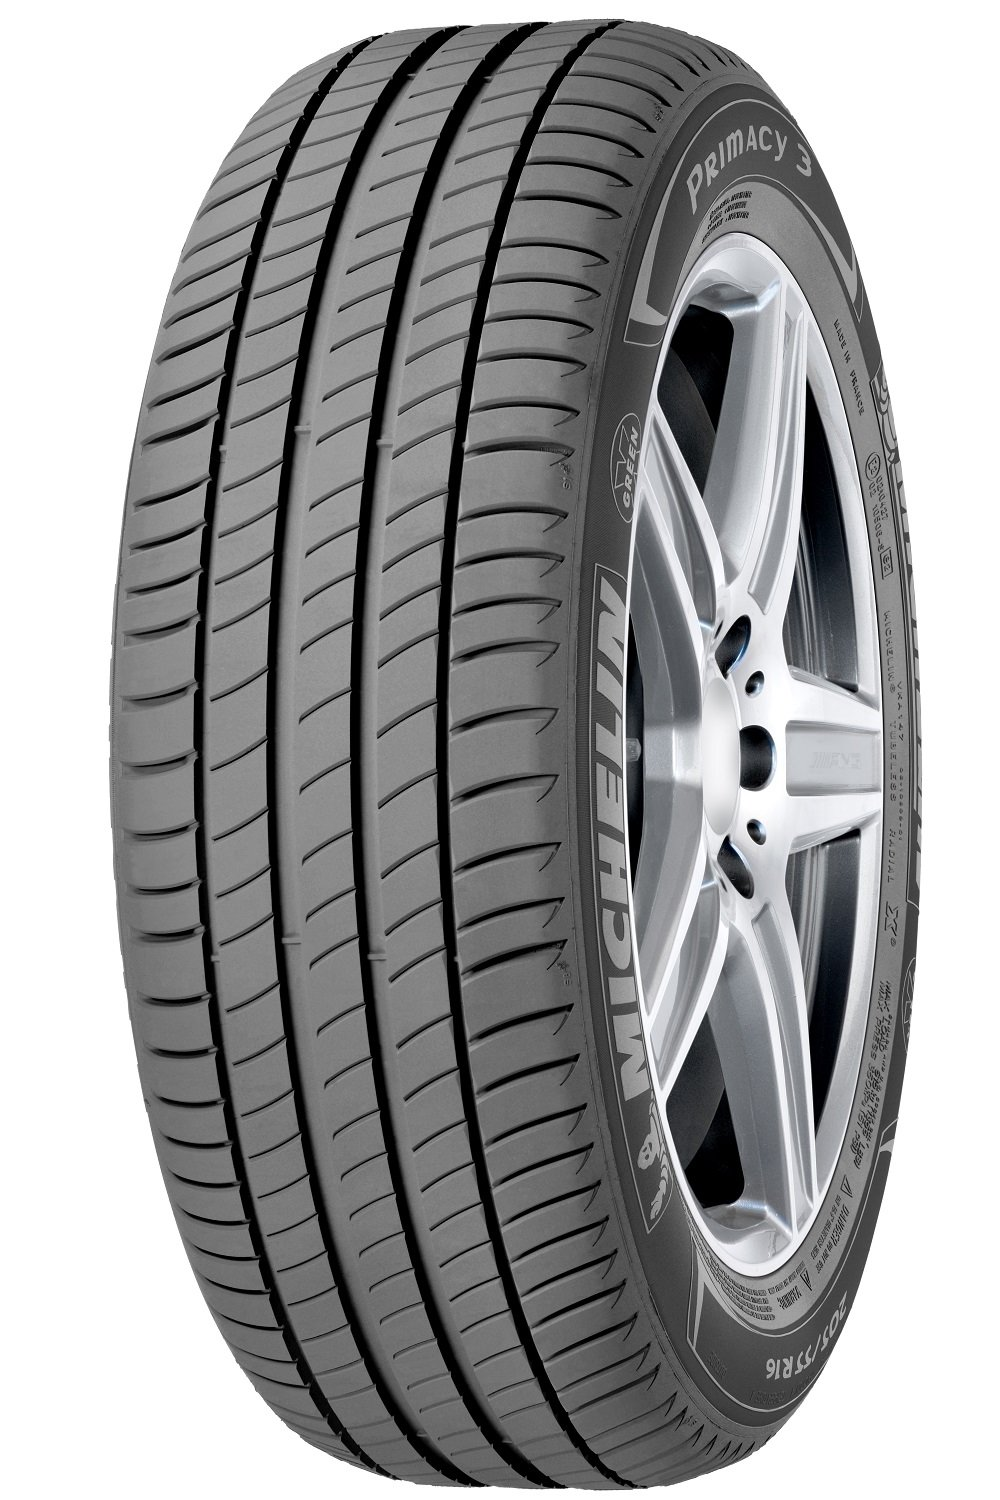 MICHELIN PRIMACY 3 235/45R17